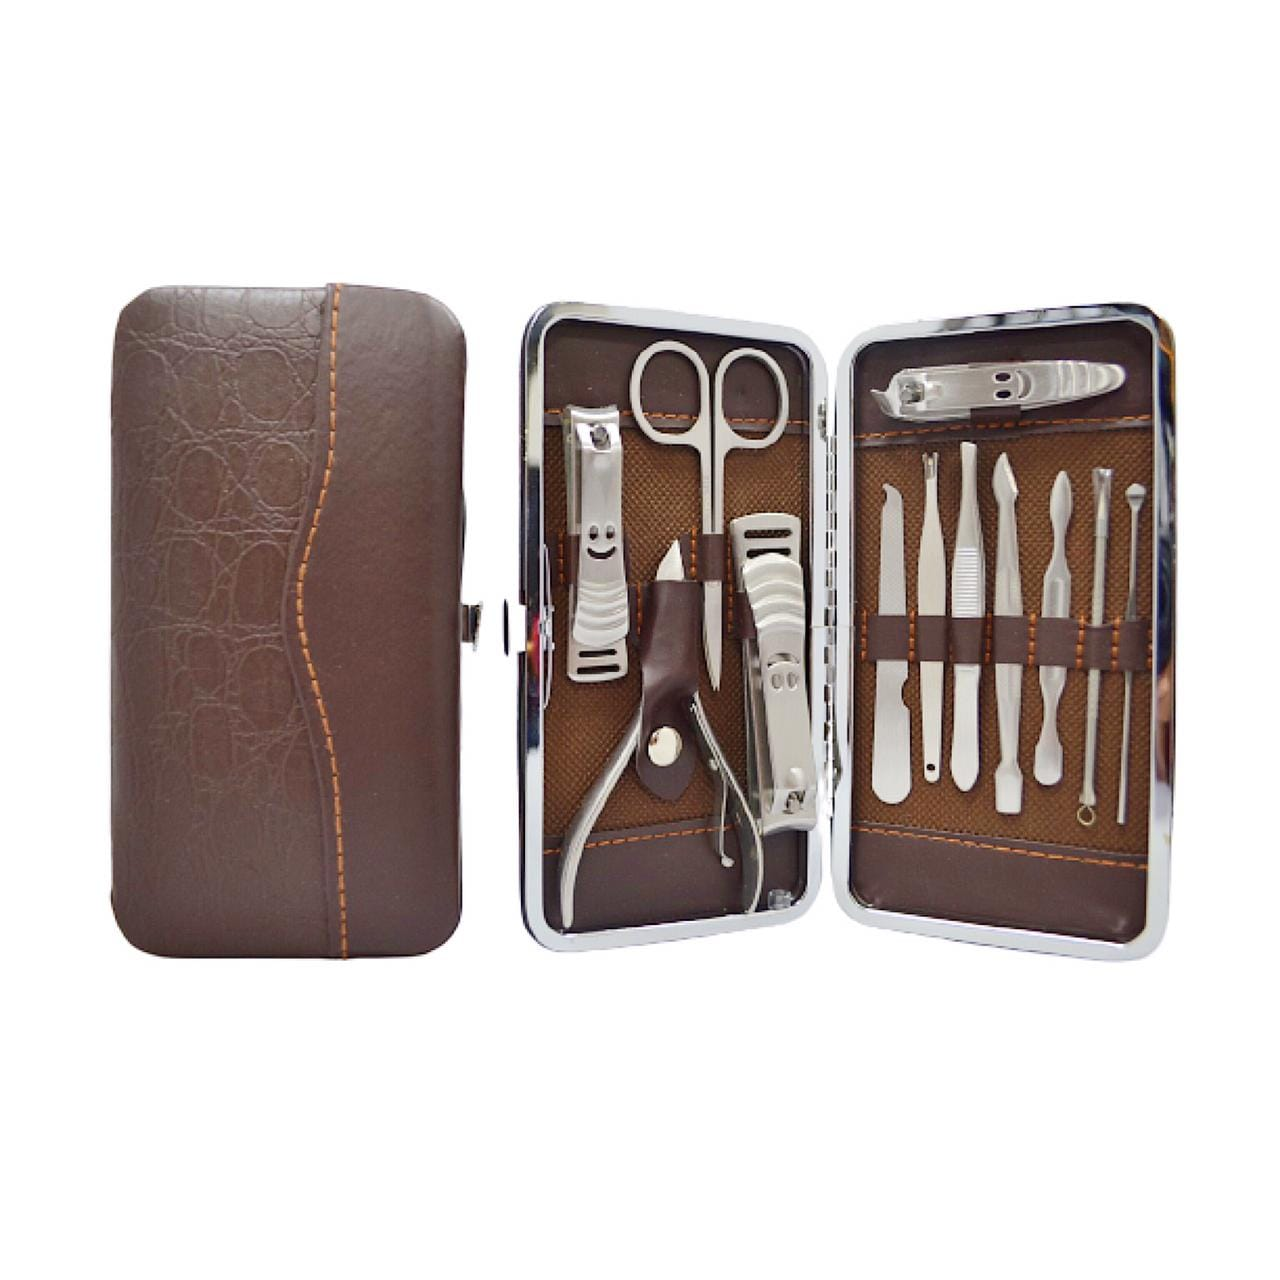 Globalstar Professional 12 in 1 Manicure Set - 1228B